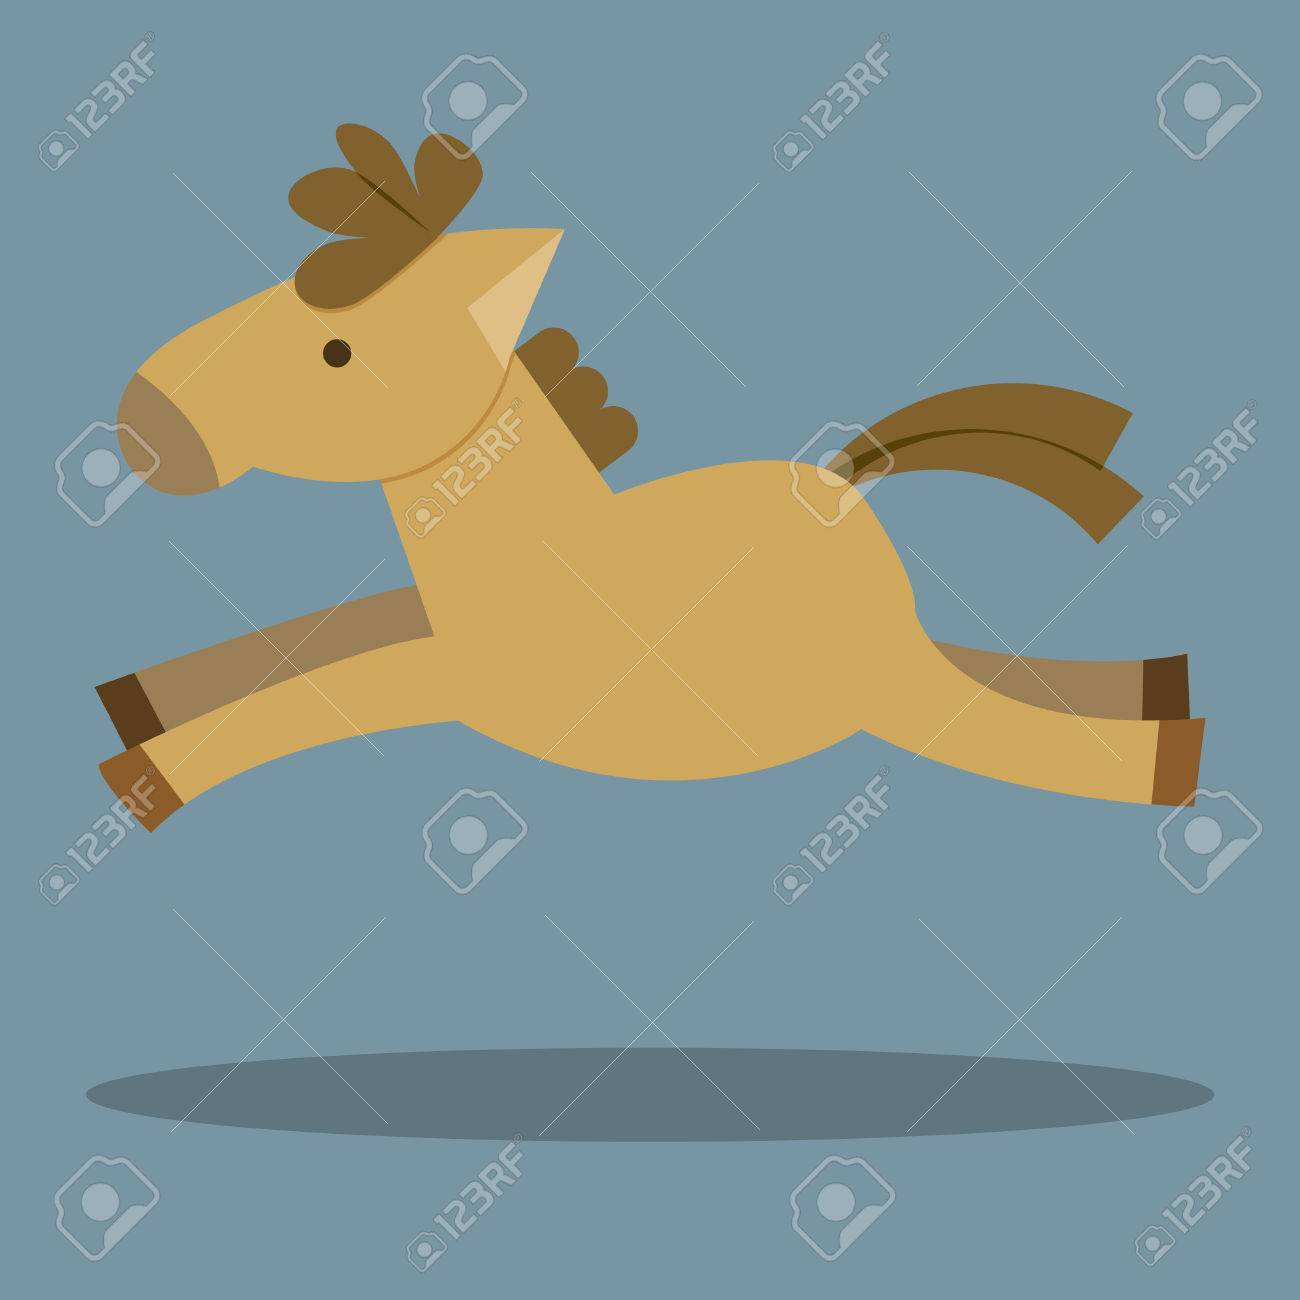 Illustration Of A Funny Horse Cartoon Horse Running Horse Jumping Royalty Free Cliparts Vectors And Stock Illustration Image 24024118